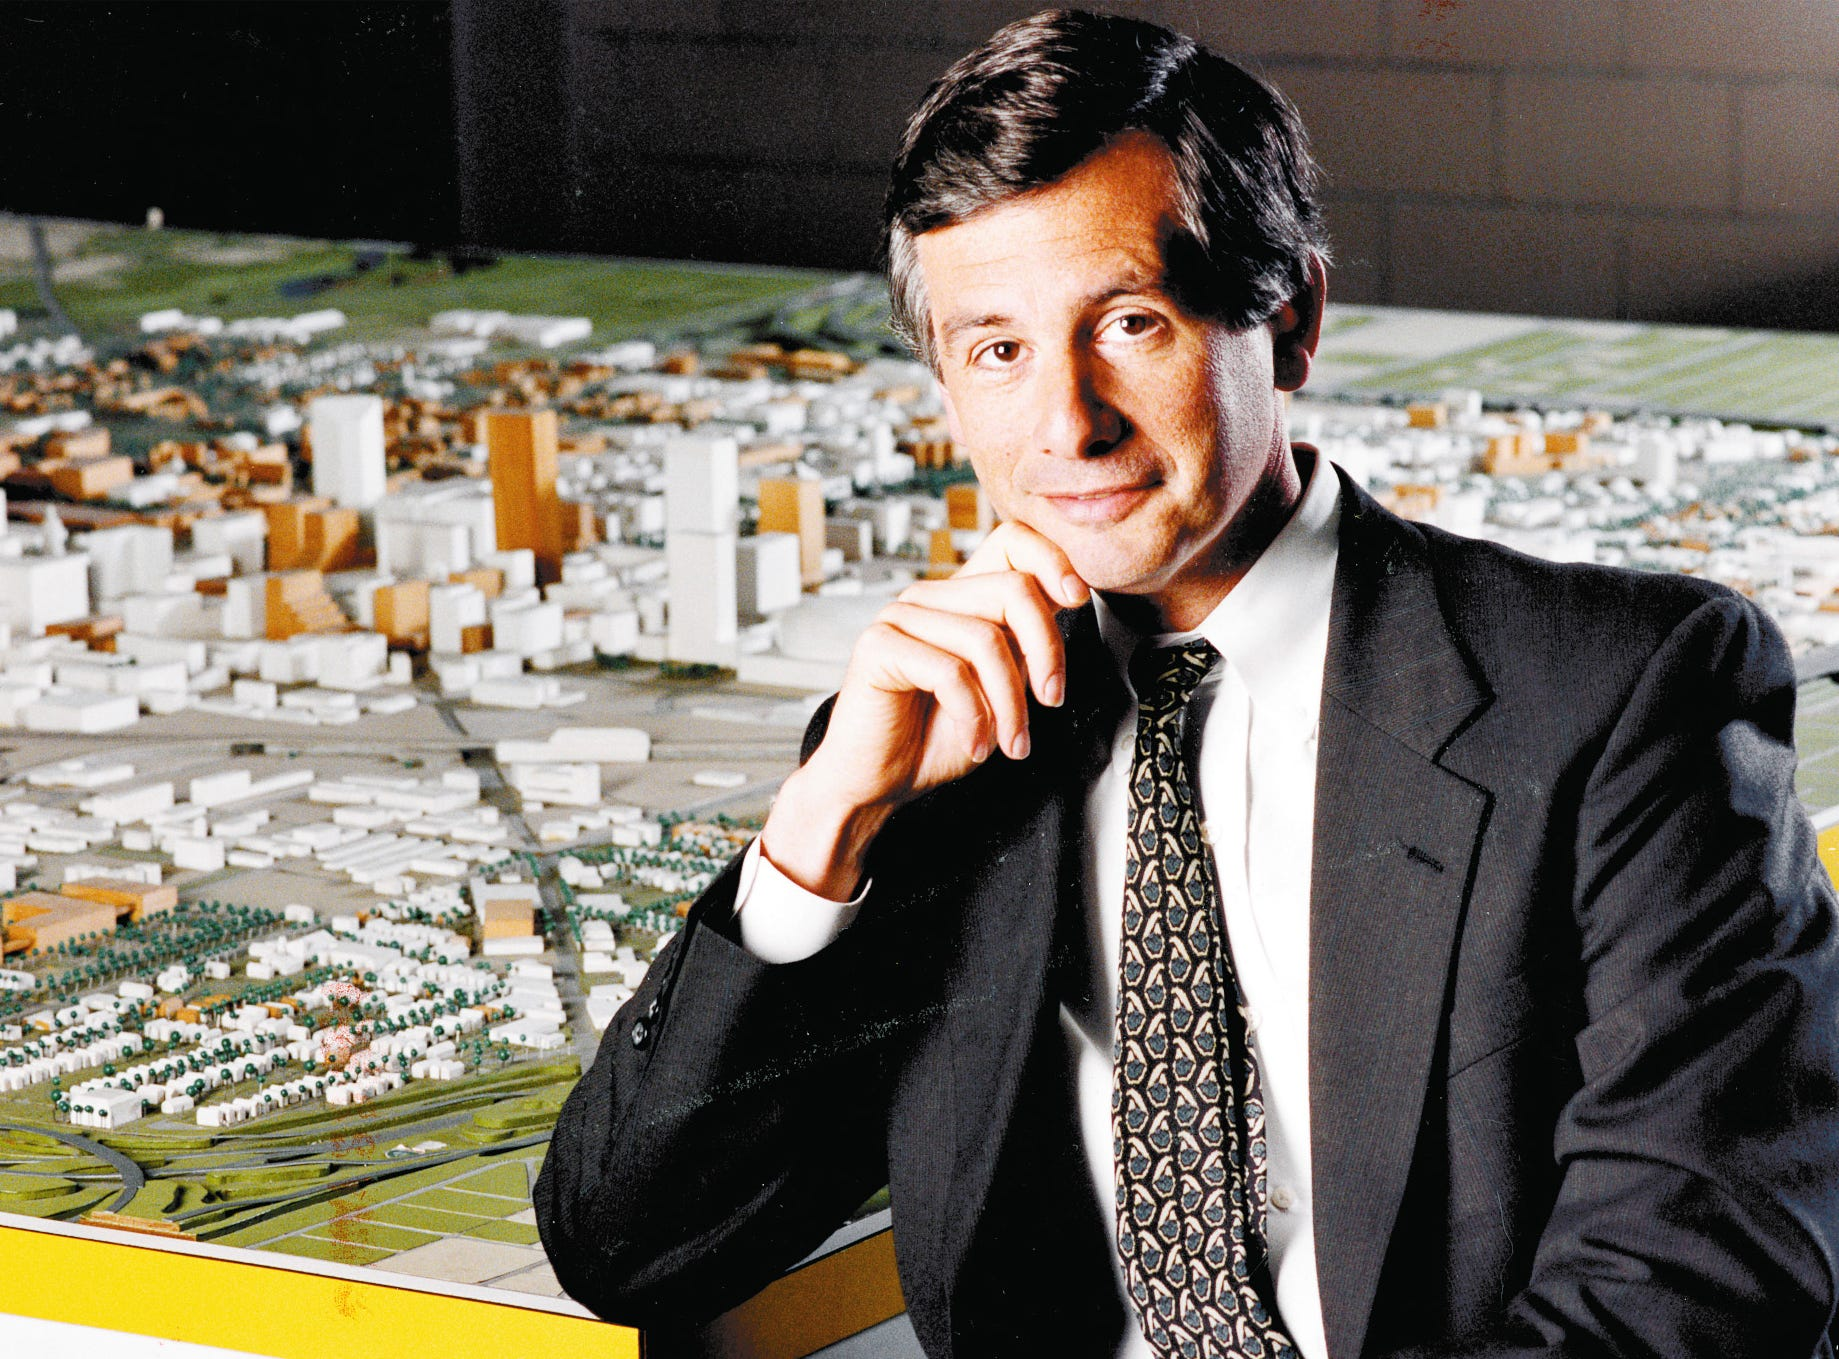 Indianapolis Mayor Stephen Goldsmith poses in front of a scale model of the city on Nov. 21, 1991.